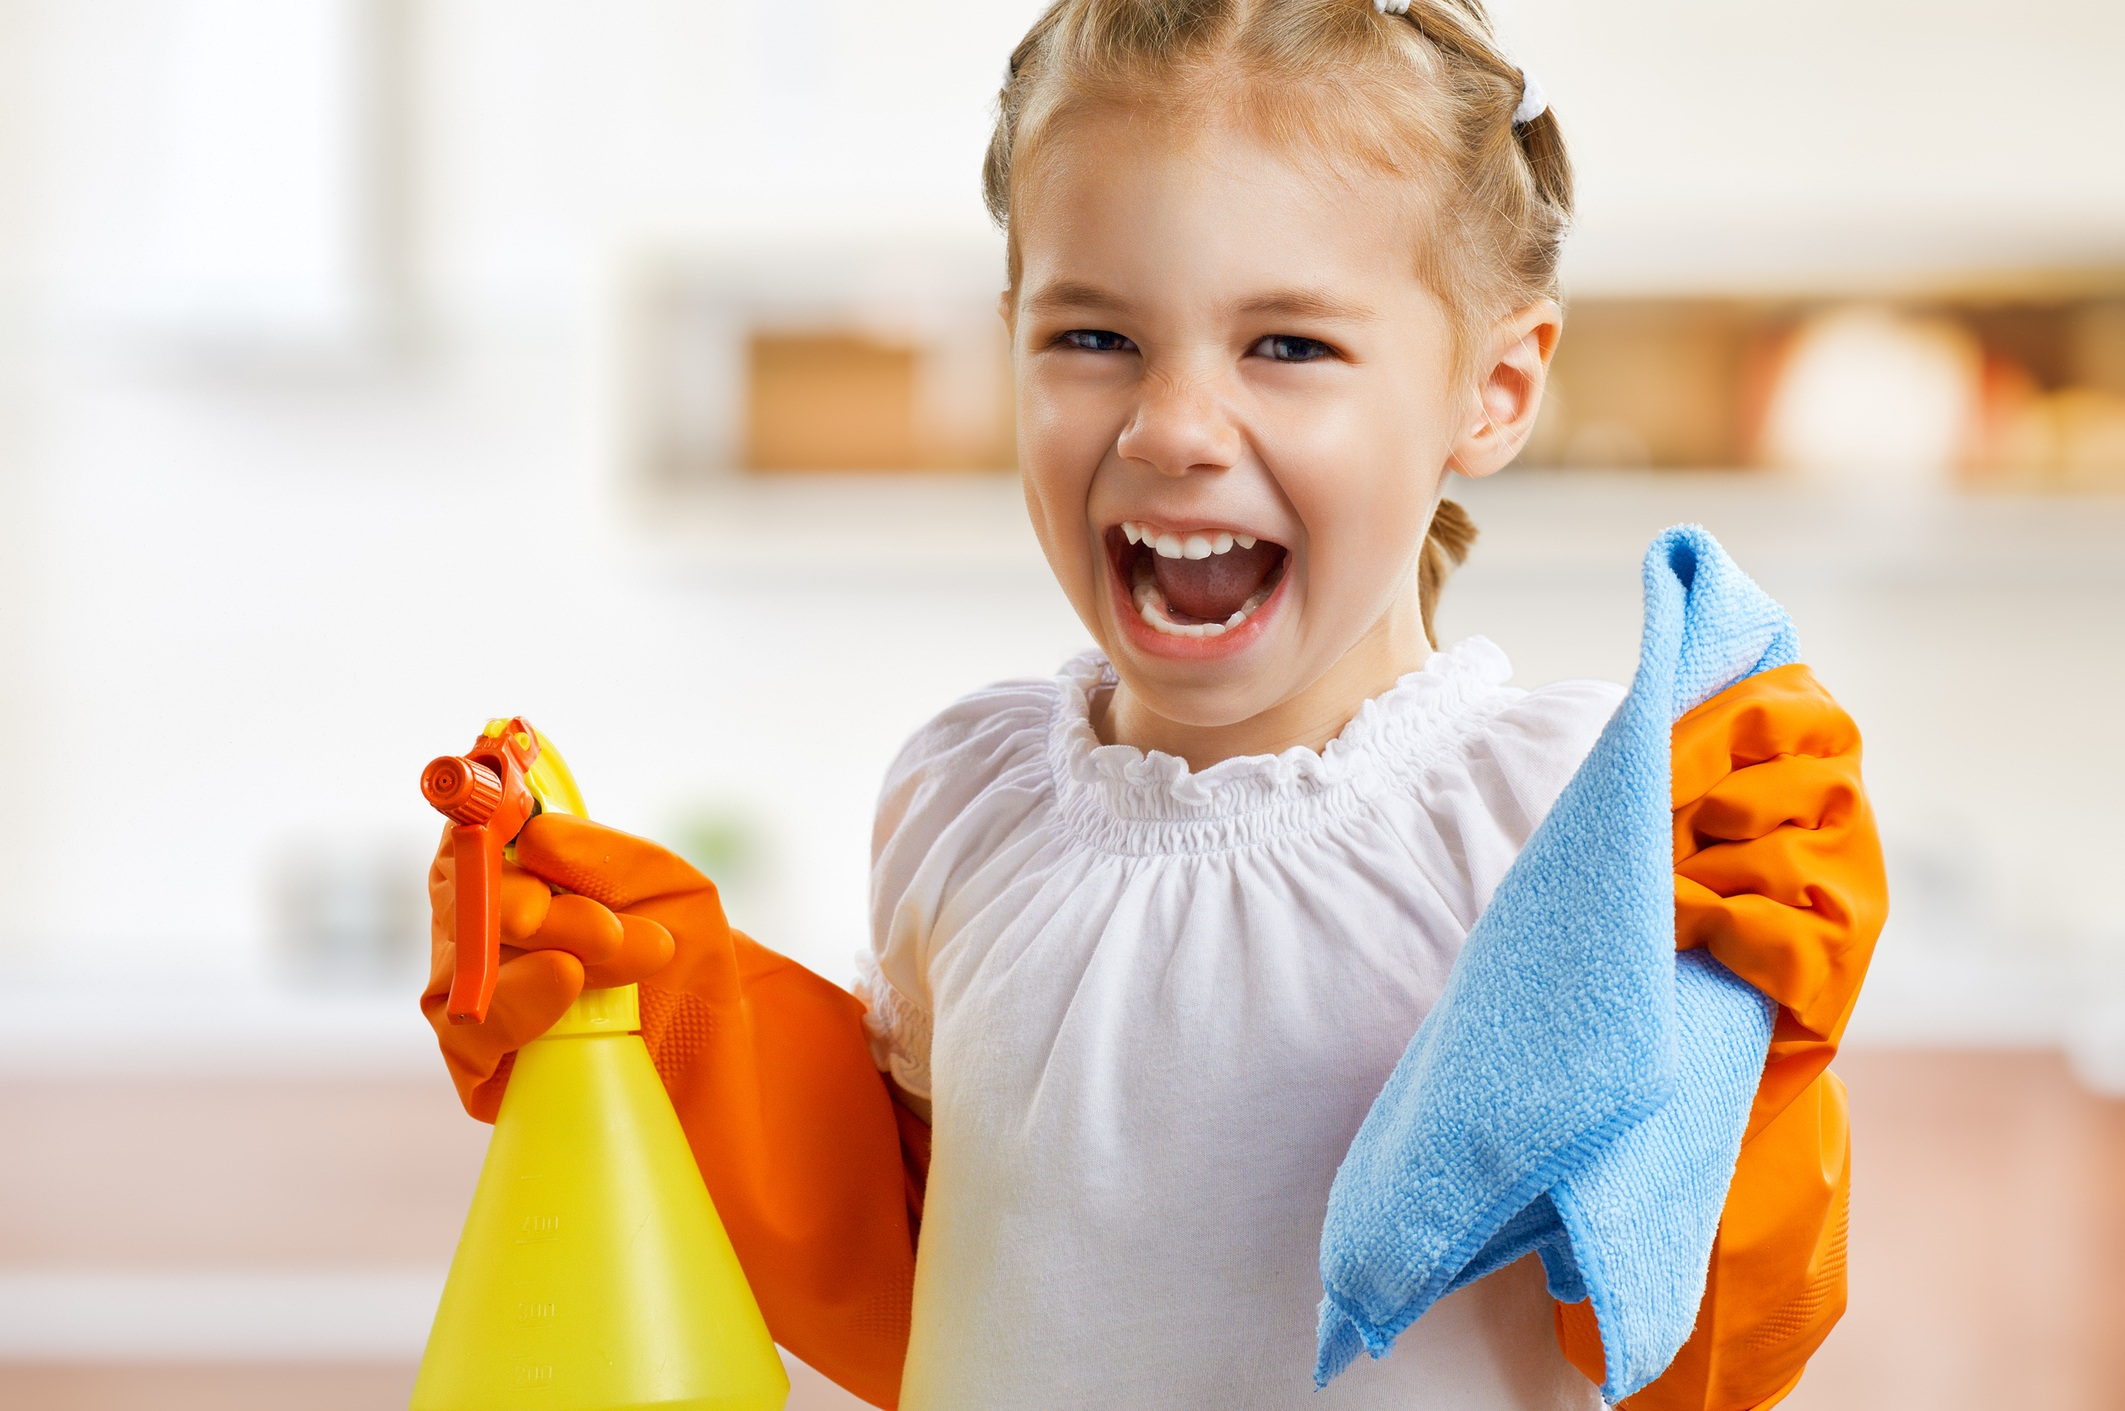 Little girl doing chores and cleaning